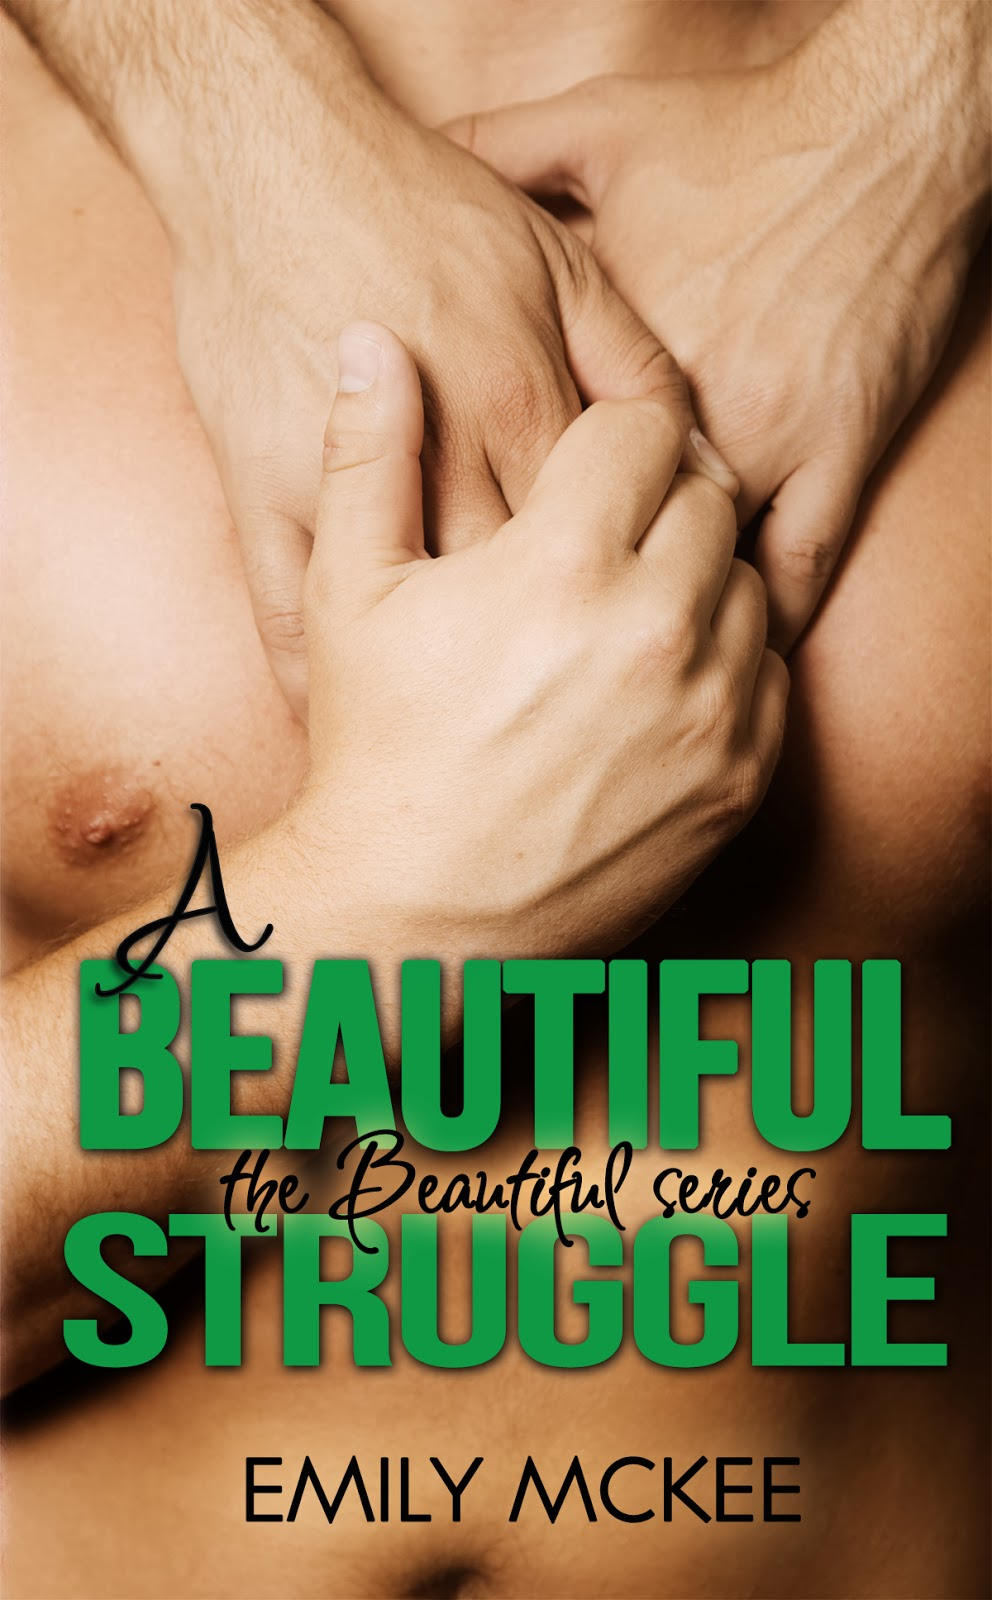 https://www.goodreads.com/book/show/18074049-a-beautiful-struggle